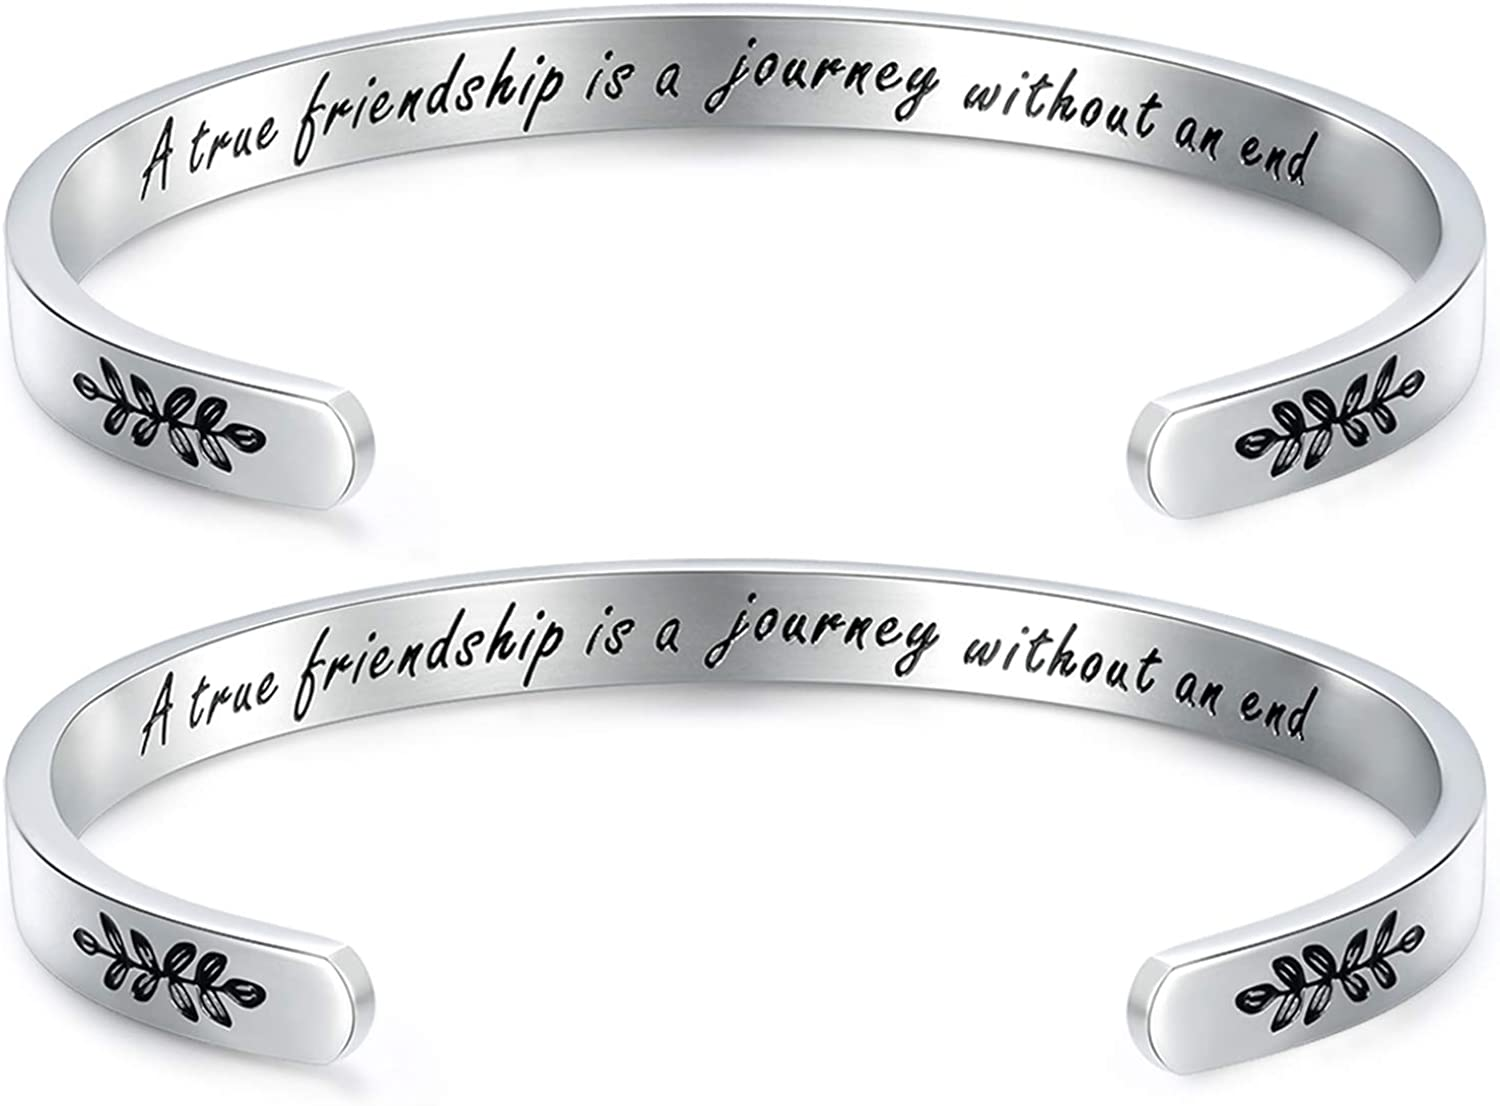 CERSLIMO Inspirational Bracelets for Women Personalized Positive Message Engraved Friends Bracelets Encouragement Friendship Cuff Bangle for Birthday Christmas